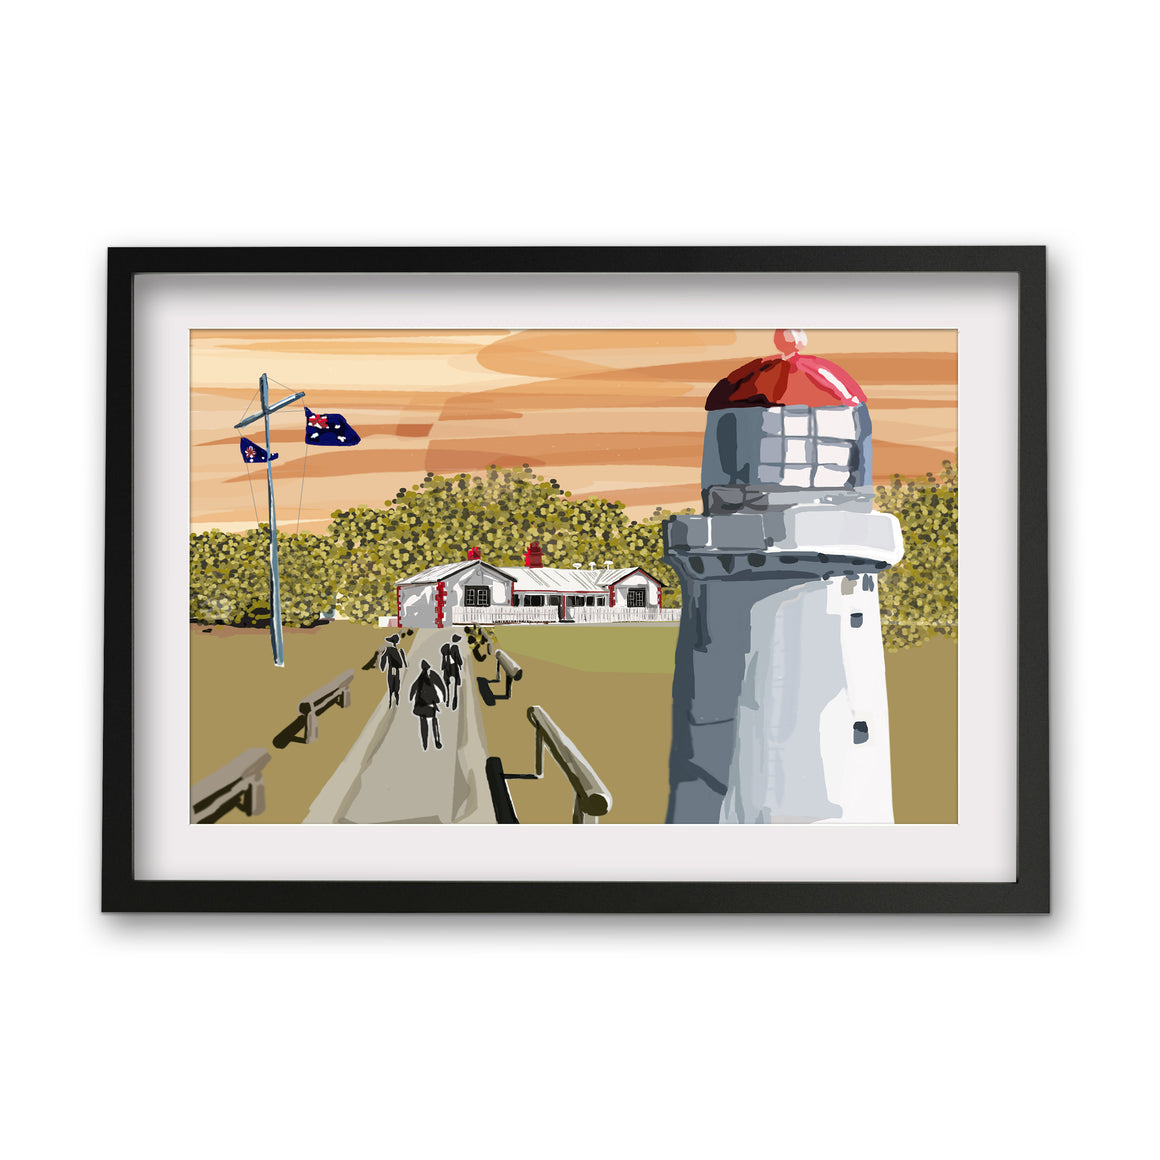 Print (Iconic) - Coastal Cape Schanck Lighthouse Sunset, Mornighton Peninsula